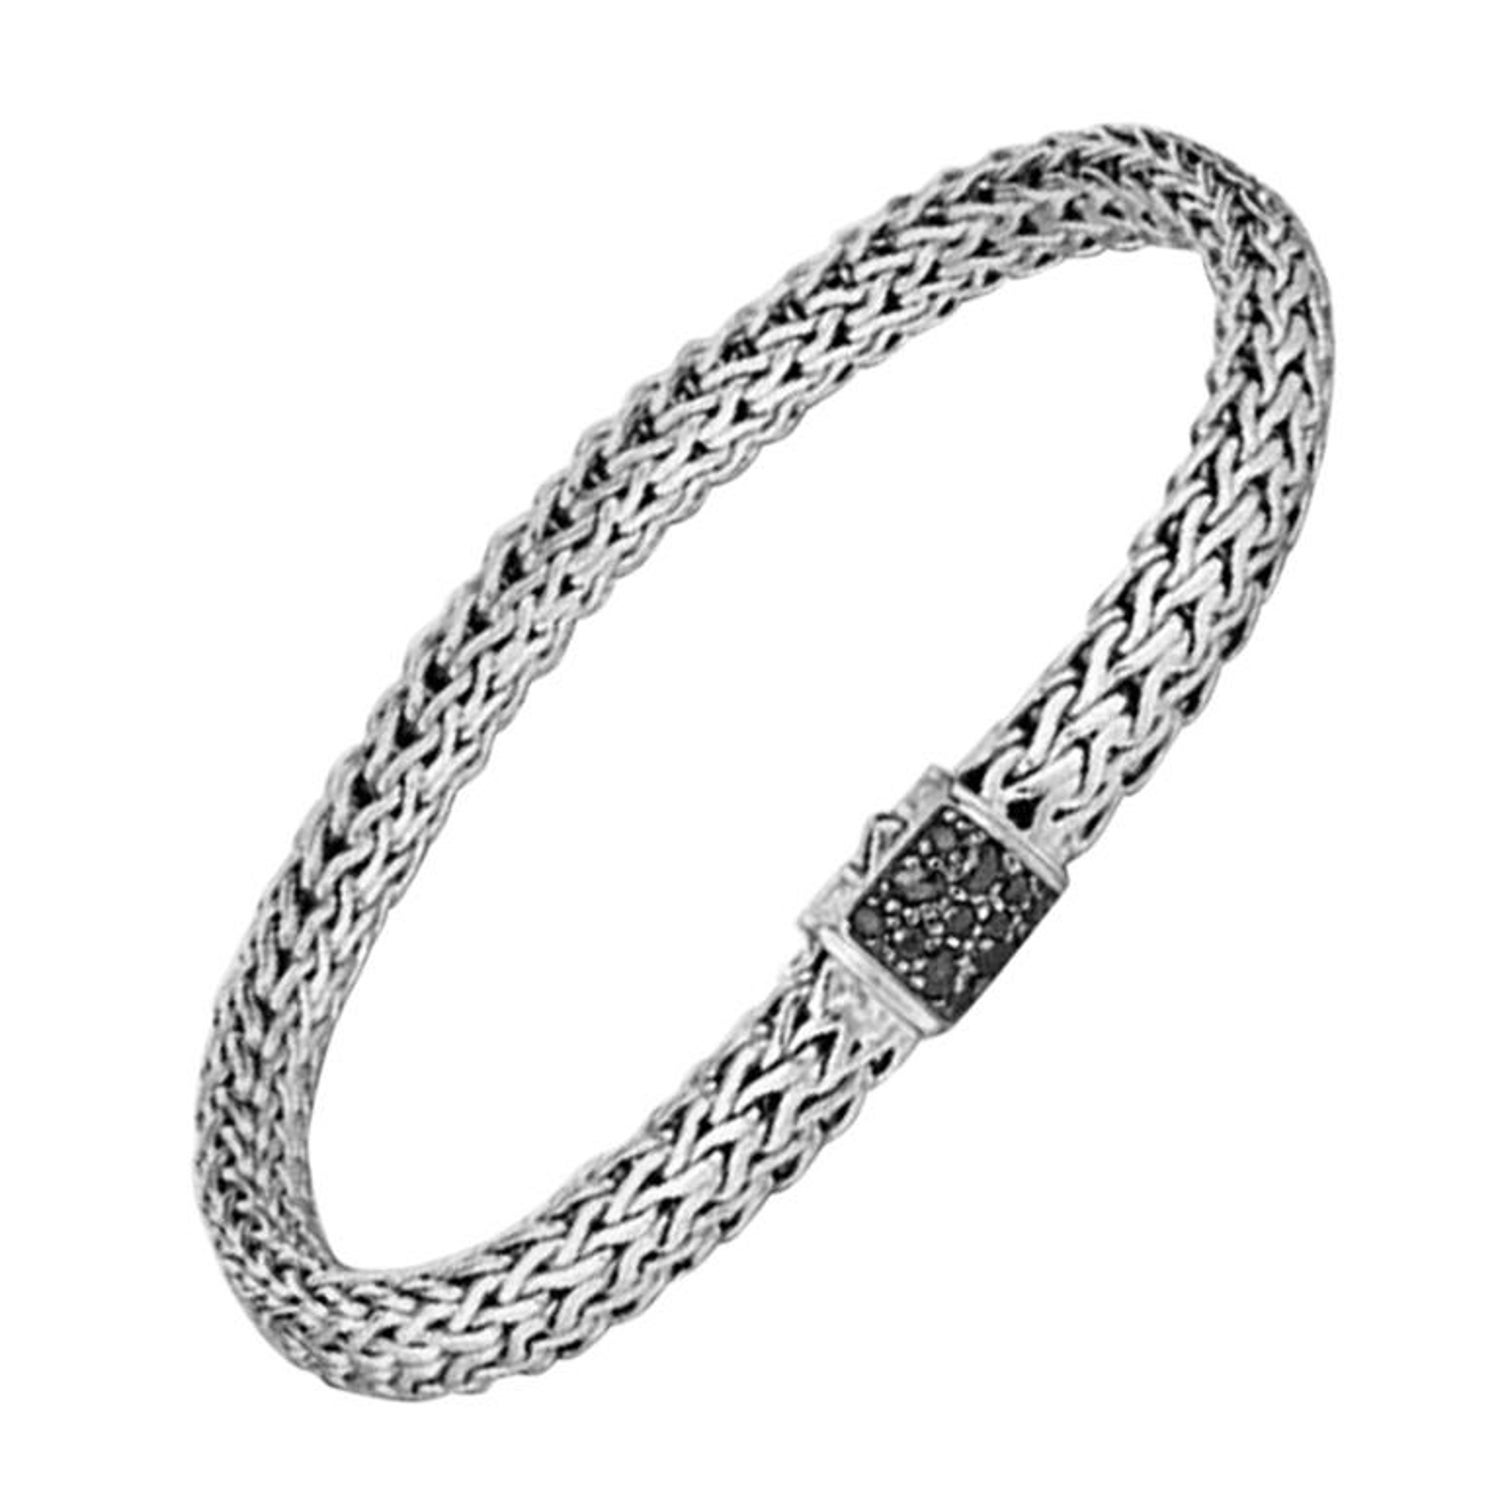 ed47fc8bc John Hardy Sterling Silver Black Sapphire Classic Chain Medium Men's  Bracelet For Sale at 1stdibs